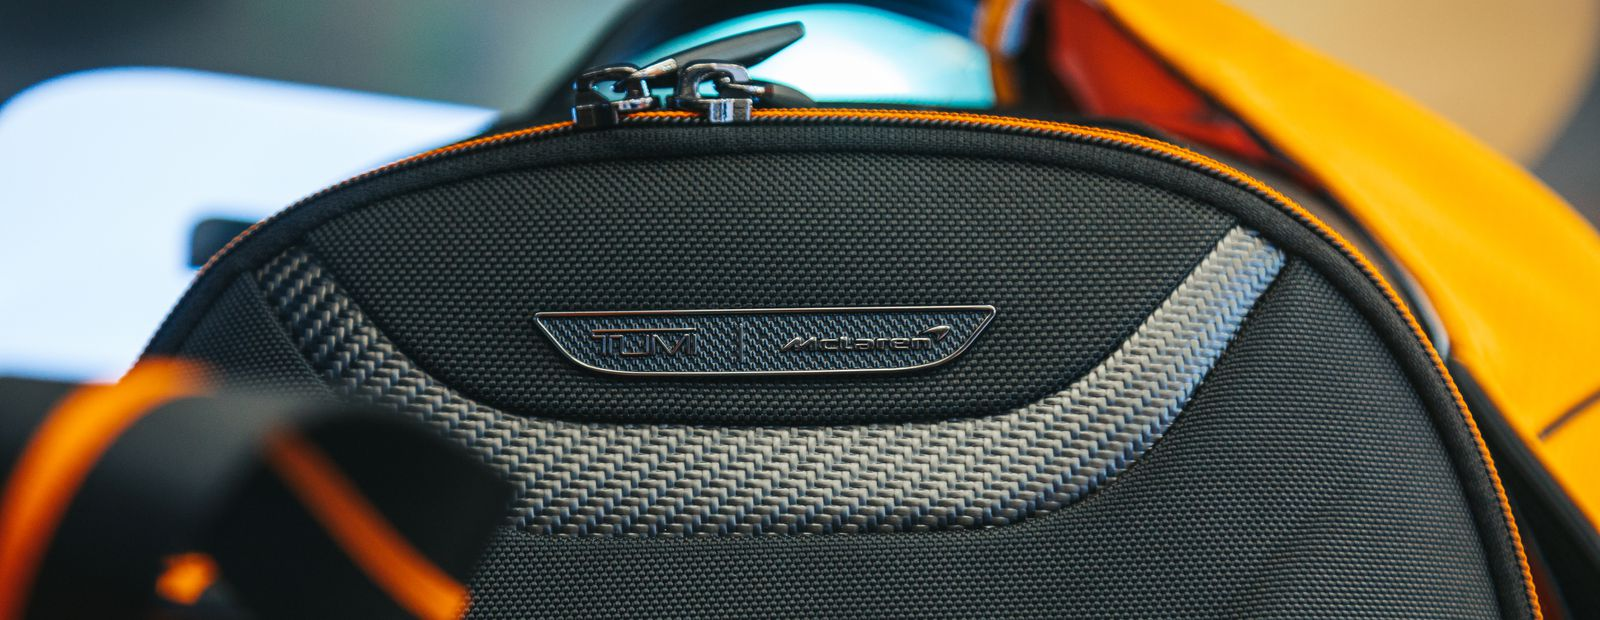 McLaren and TUMI unveil premium capsule luggage and travel collection